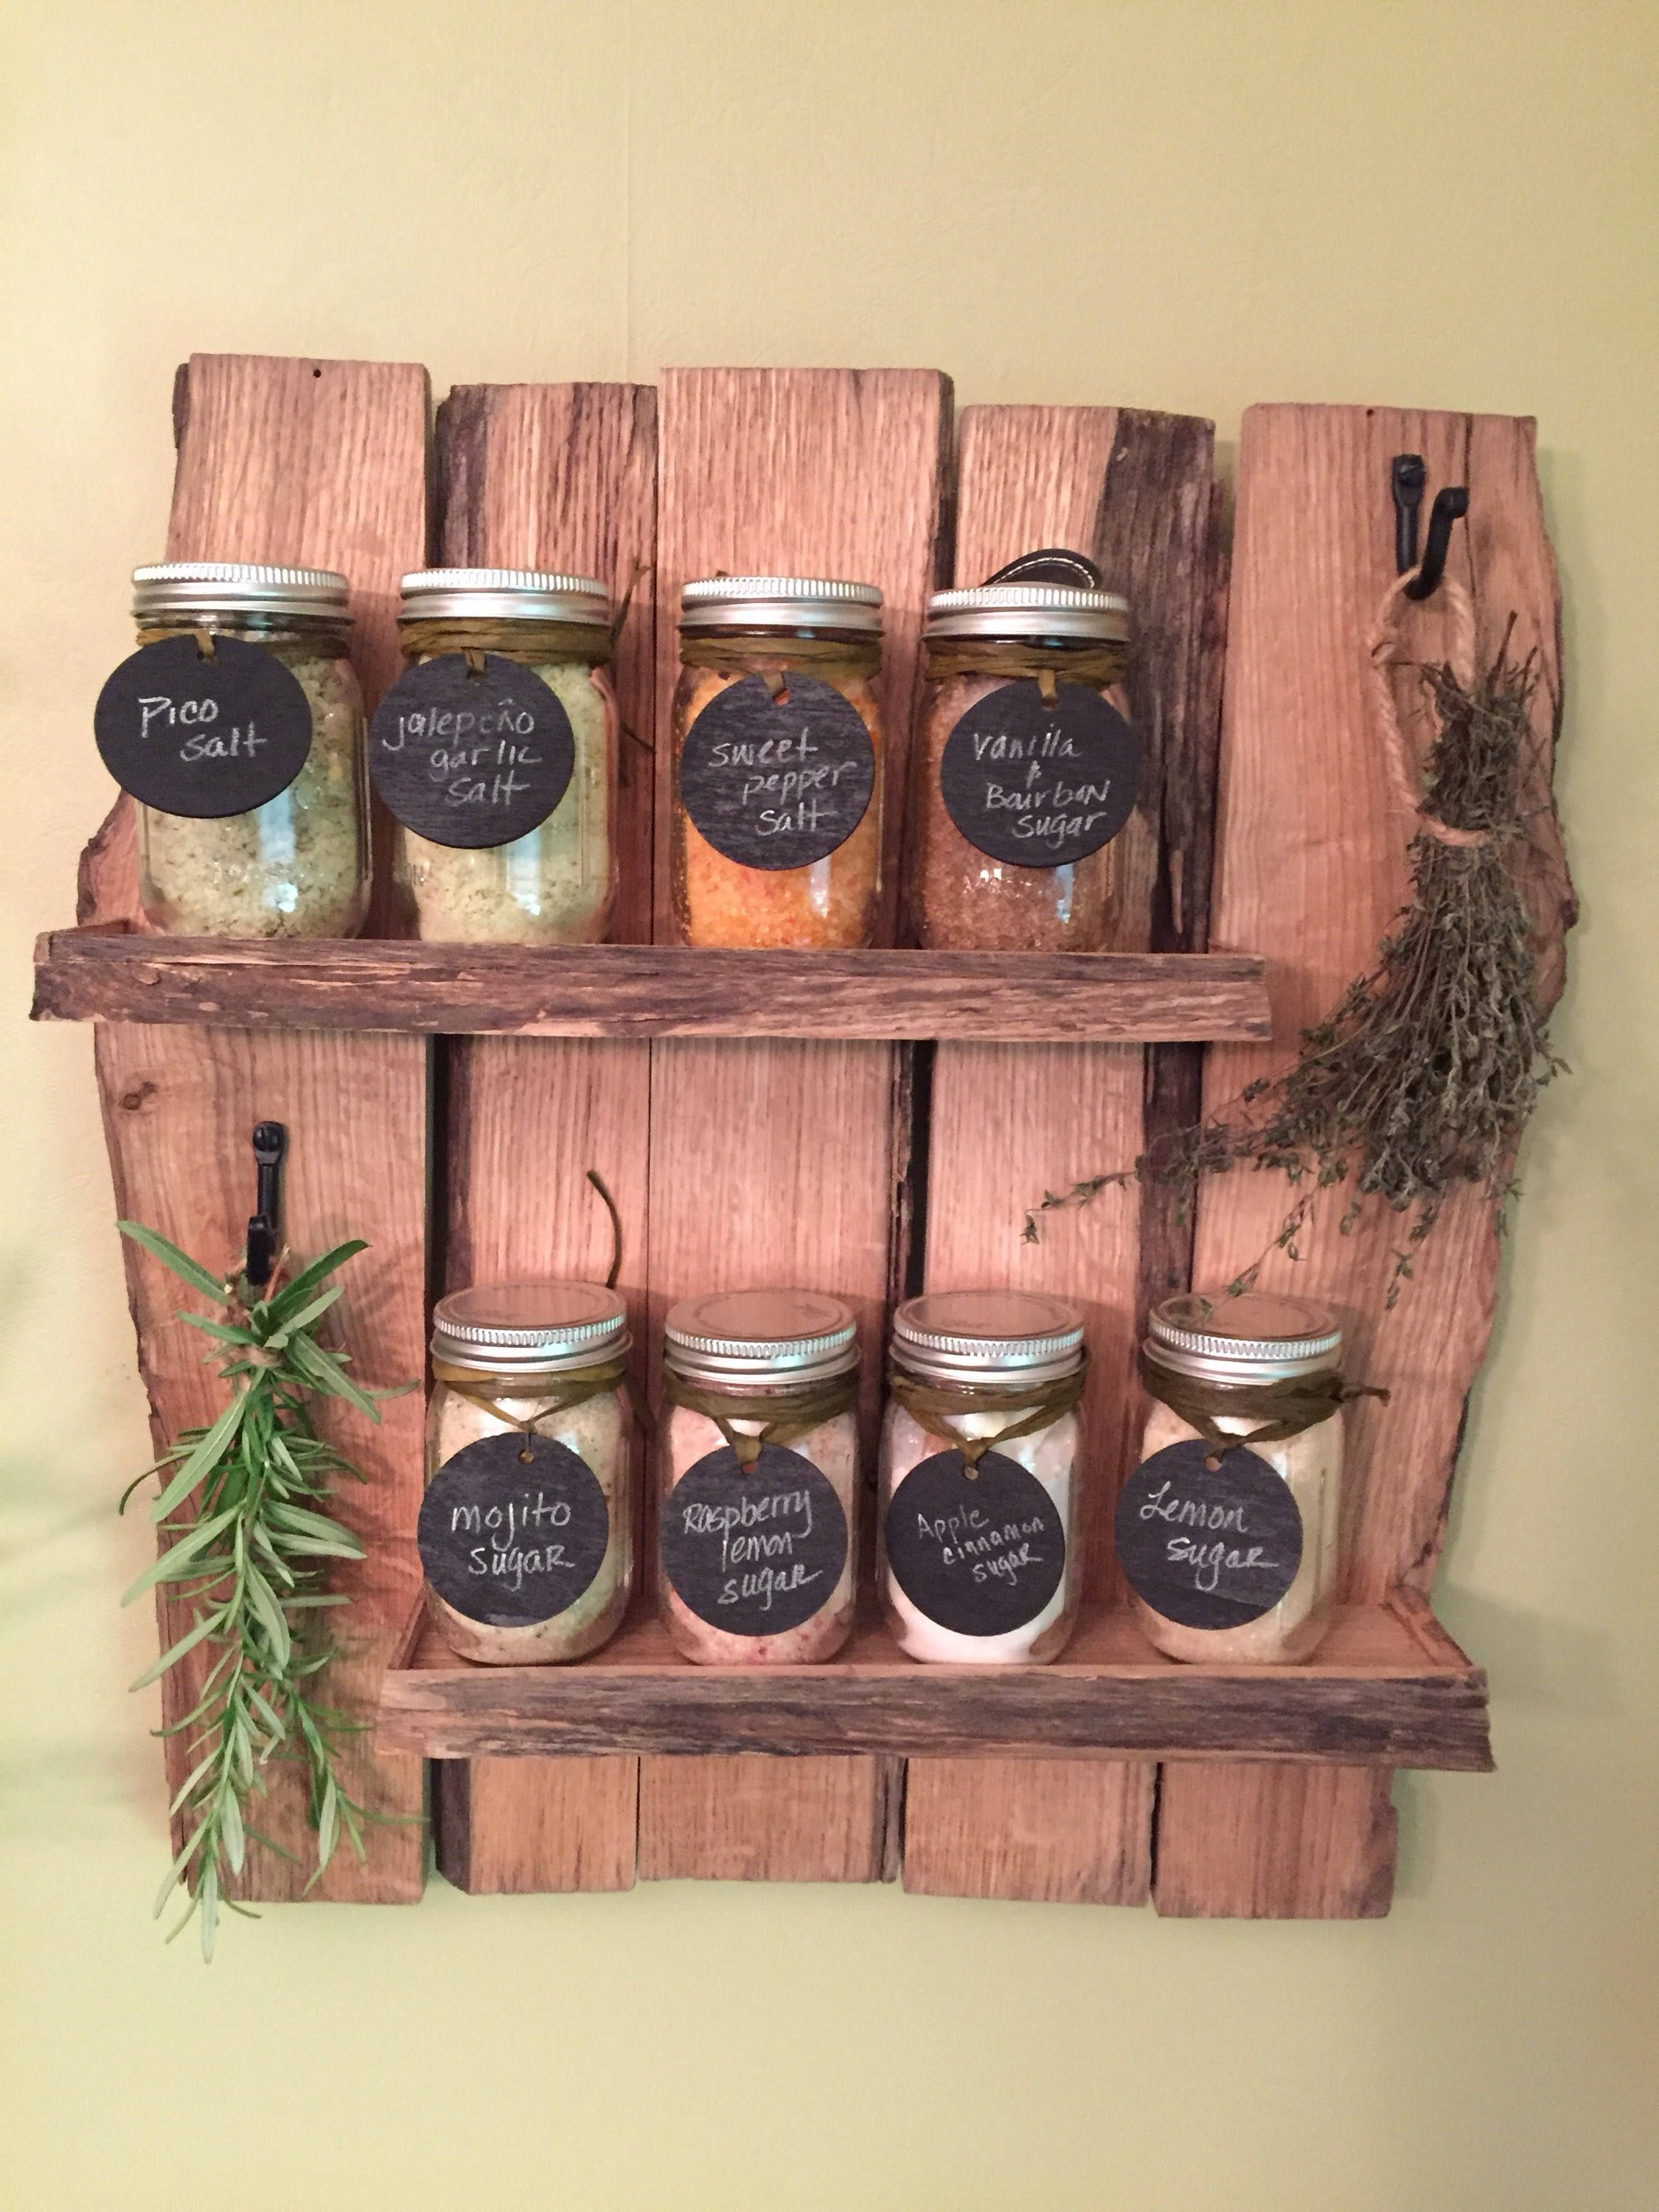 16 Practical Handmade Spice Rack Ideas That Will Help You ...